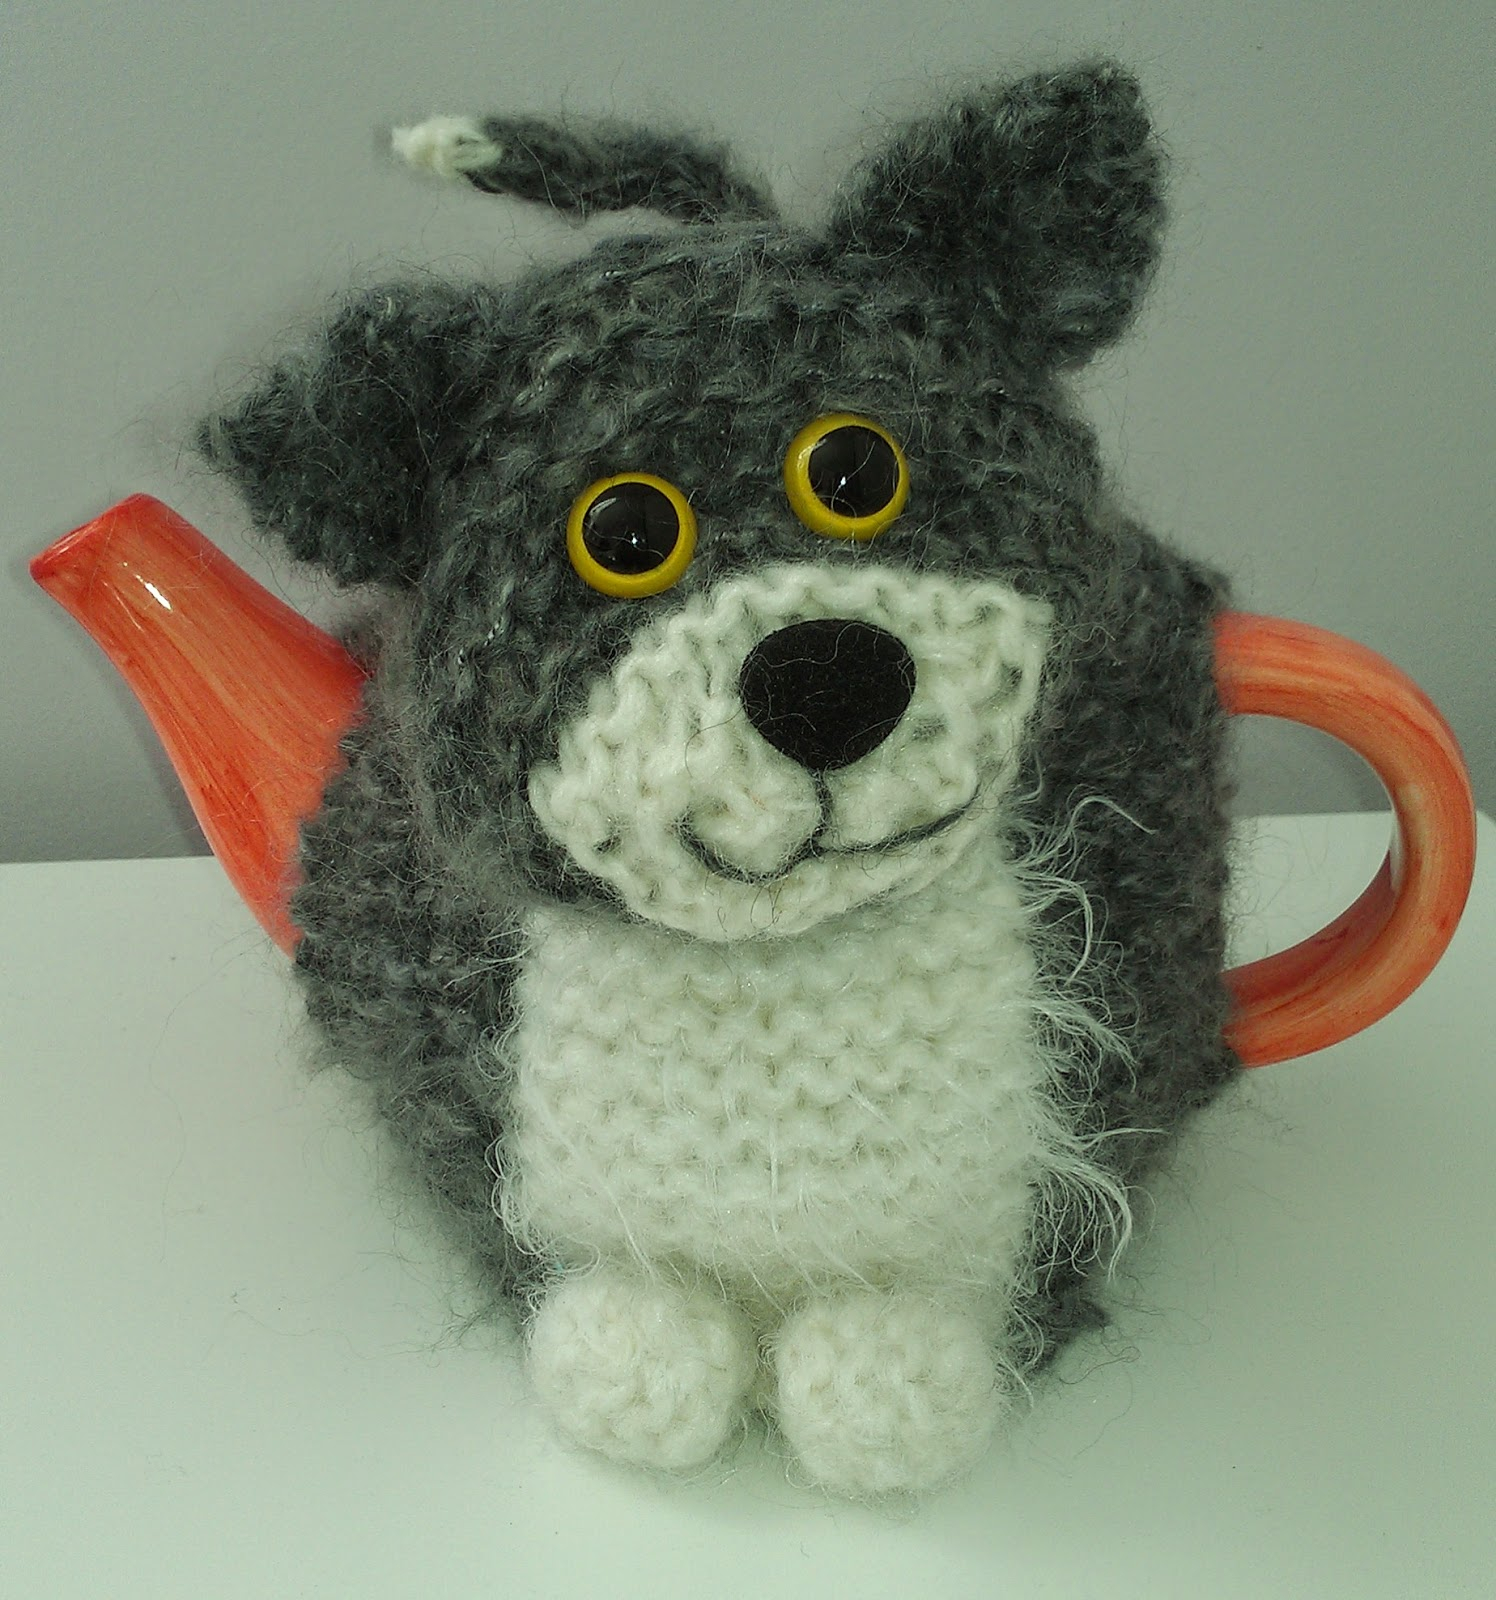 Patterns For Knitted Tea Cosies Craft A Cure For Cancer Free Tea Cosy Patterns Animal Tea Cosies